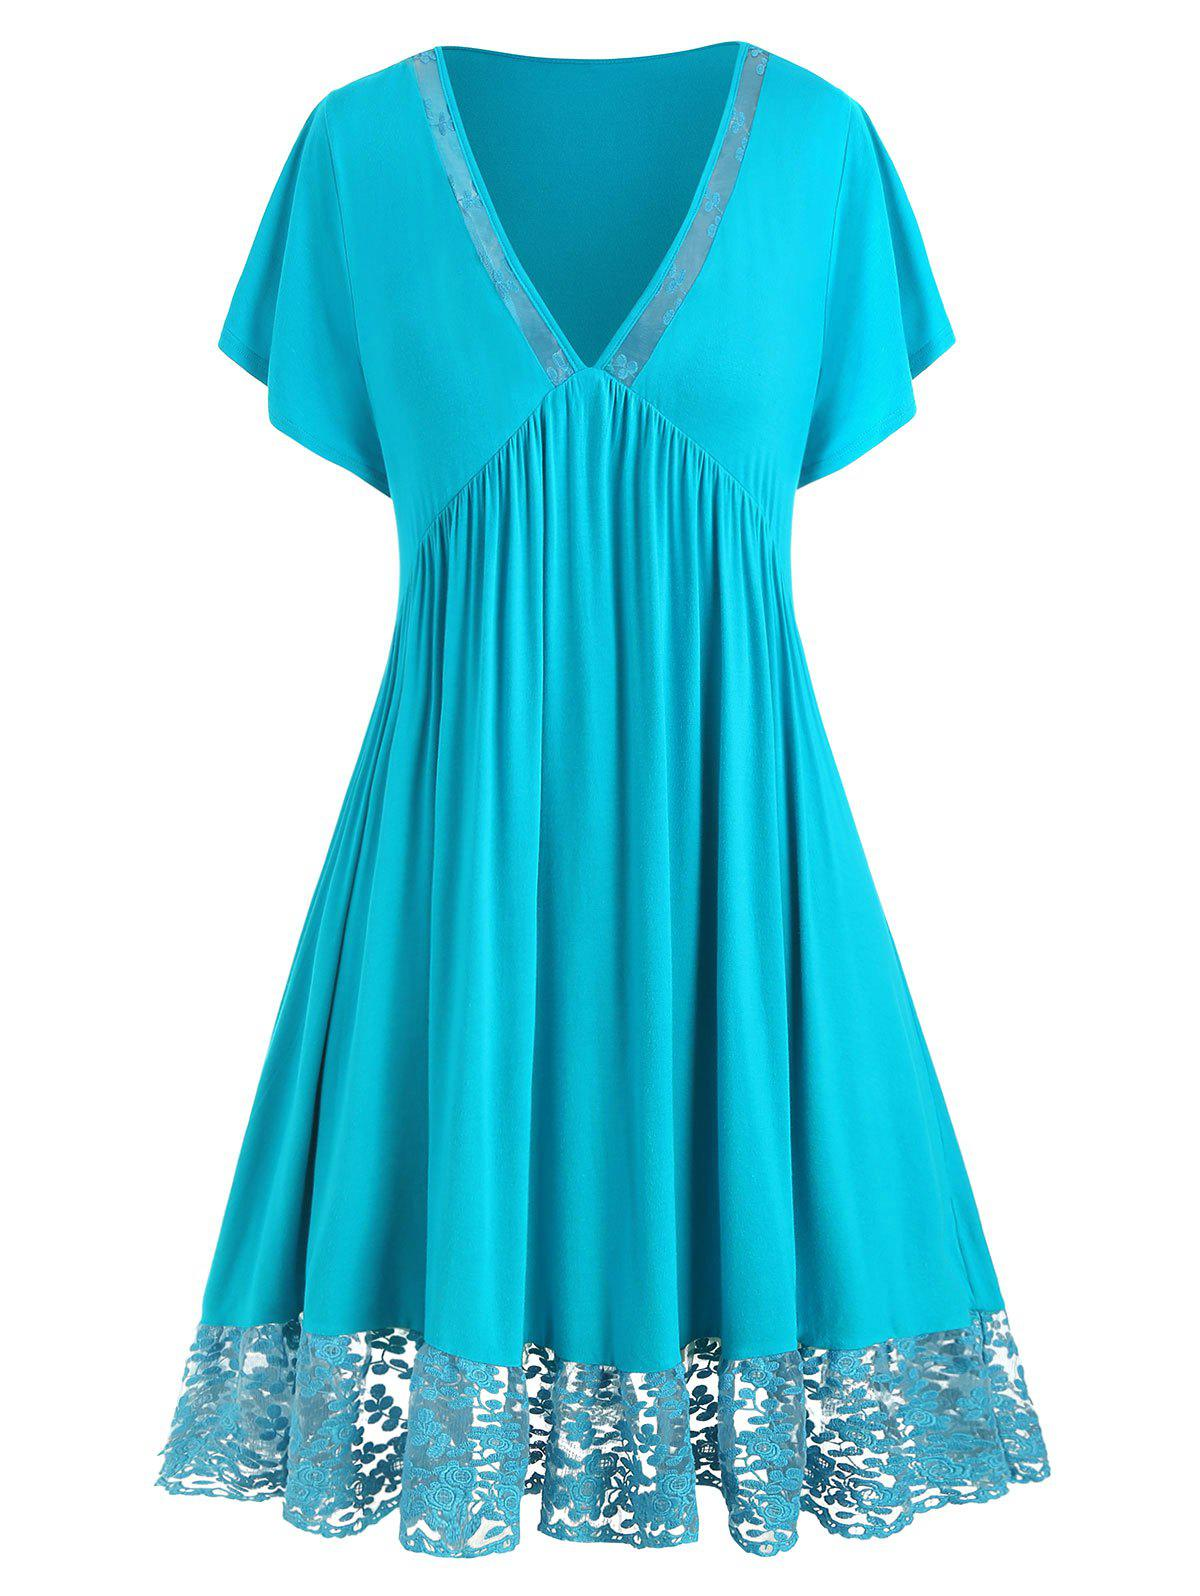 Plus Size Lace Insert Plunging Neck Solid Dress - TURQUOISE 5X